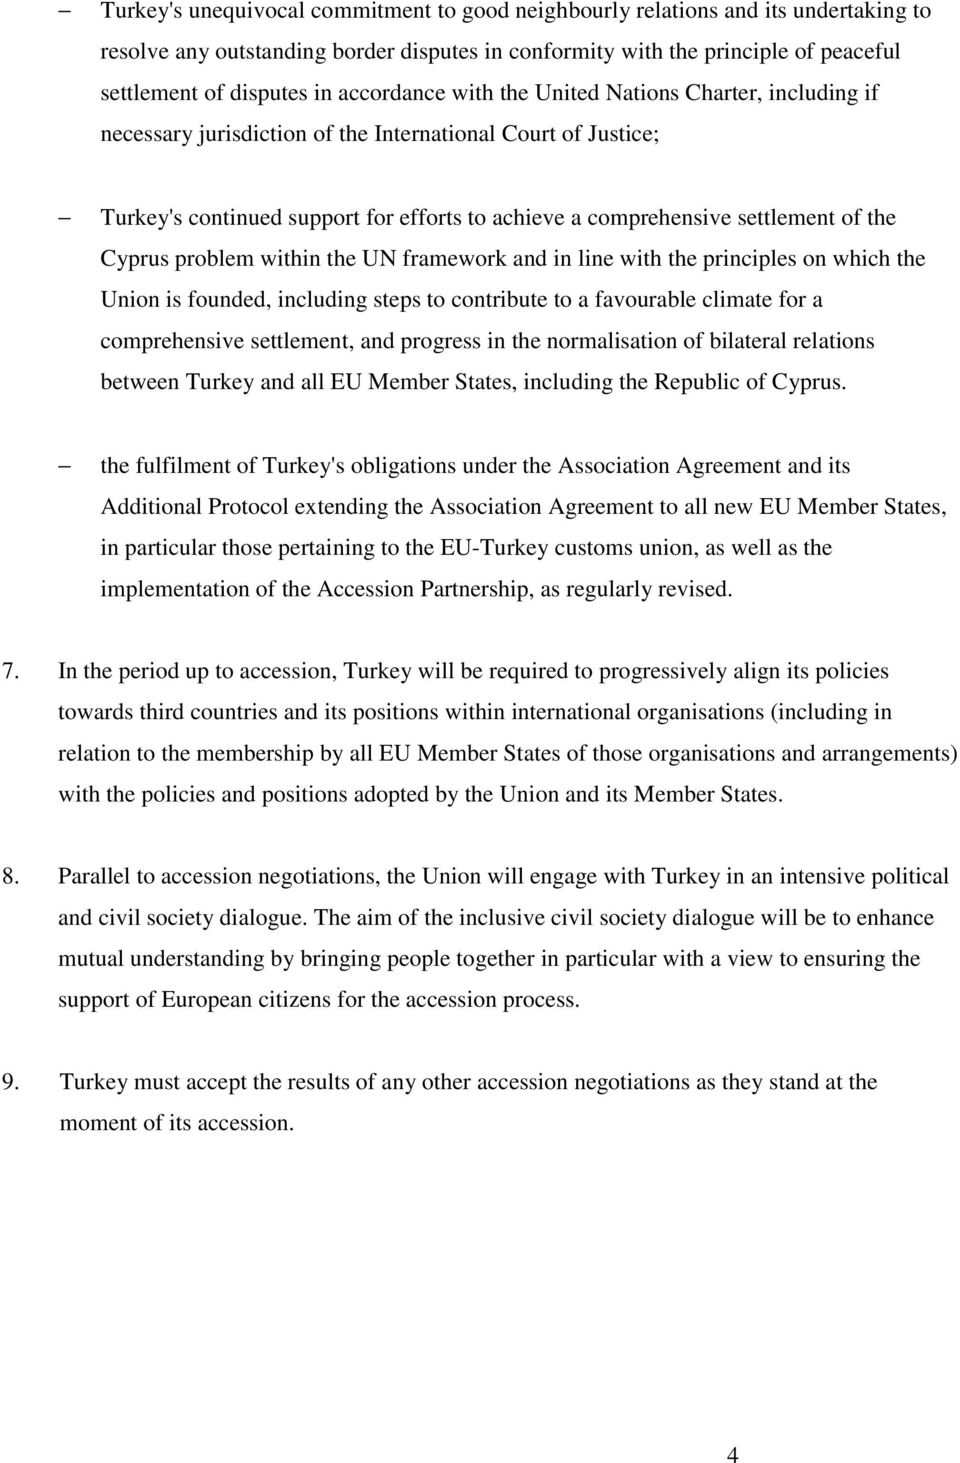 the Cyprus problem within the UN framework and in line with the principles on which the Union is founded, including steps to contribute to a favourable climate for a comprehensive settlement, and